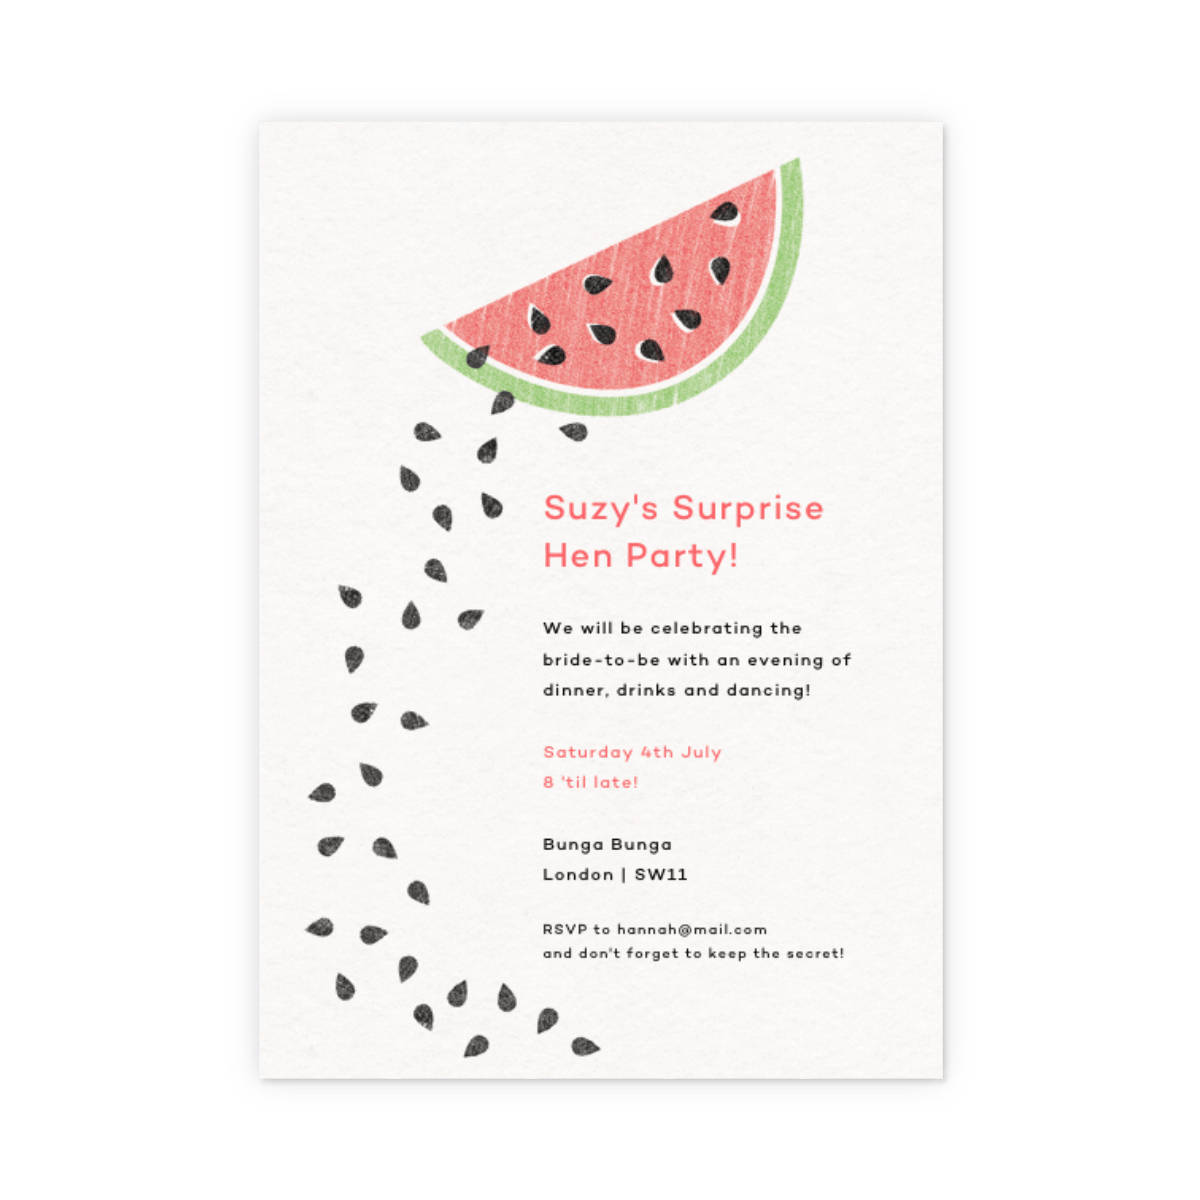 Https%3a%2f%2fwww.papier.com%2fproduct image%2f46300%2f4%2fwatermelon 11415 front 1551901064.png?ixlib=rb 1.1